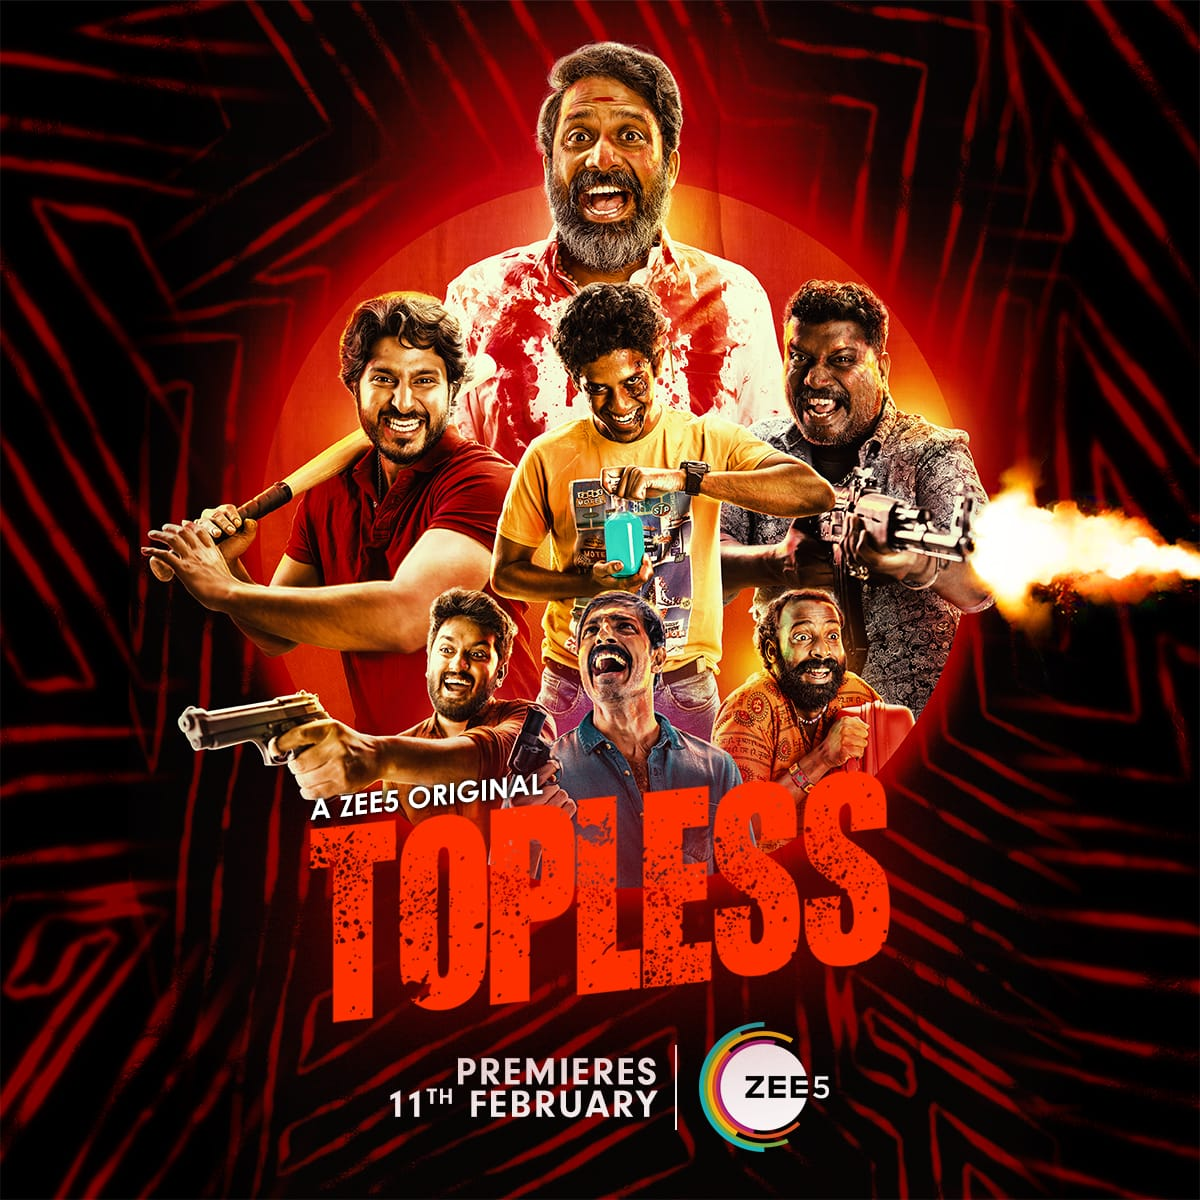 #ToplessTeaserFromTommorrow  A wild chase between gangs awaits you! Teaser of this wacky heist #Topless launches tomorrow! Stay tuned!  #ToplessOnZEE5  #AZEE5Original   @dineshmohn @SoldiersFactory @ZEE5Tamil @vishalvijayan96 @VishiViswesh @JoeArputhan @amritraw @J0min